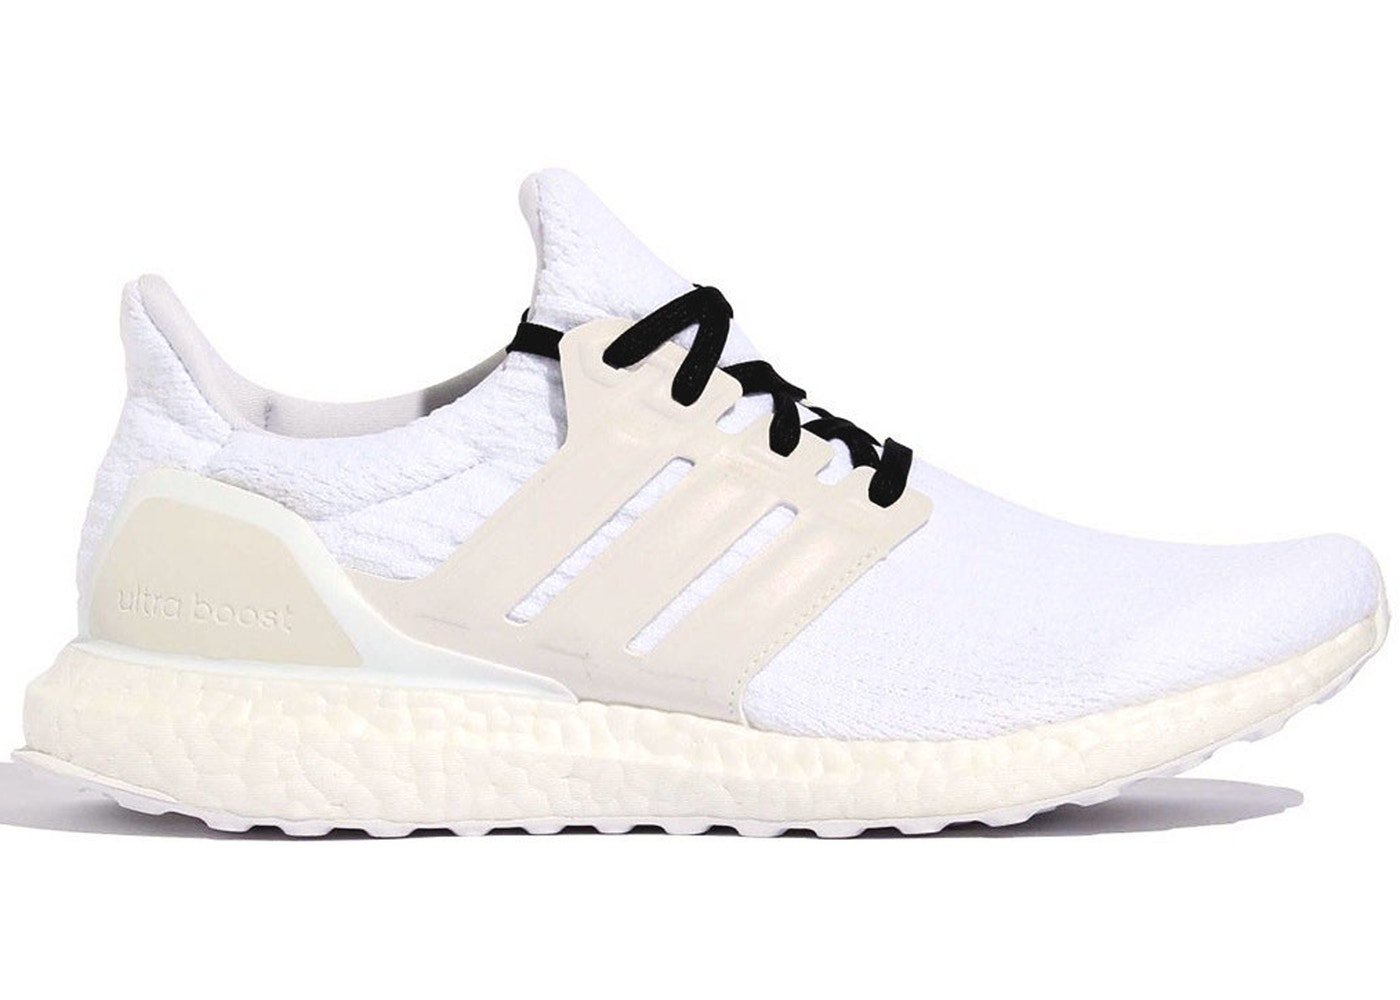 36293e7f adidas Ultra Boost Xeno White - CL5397